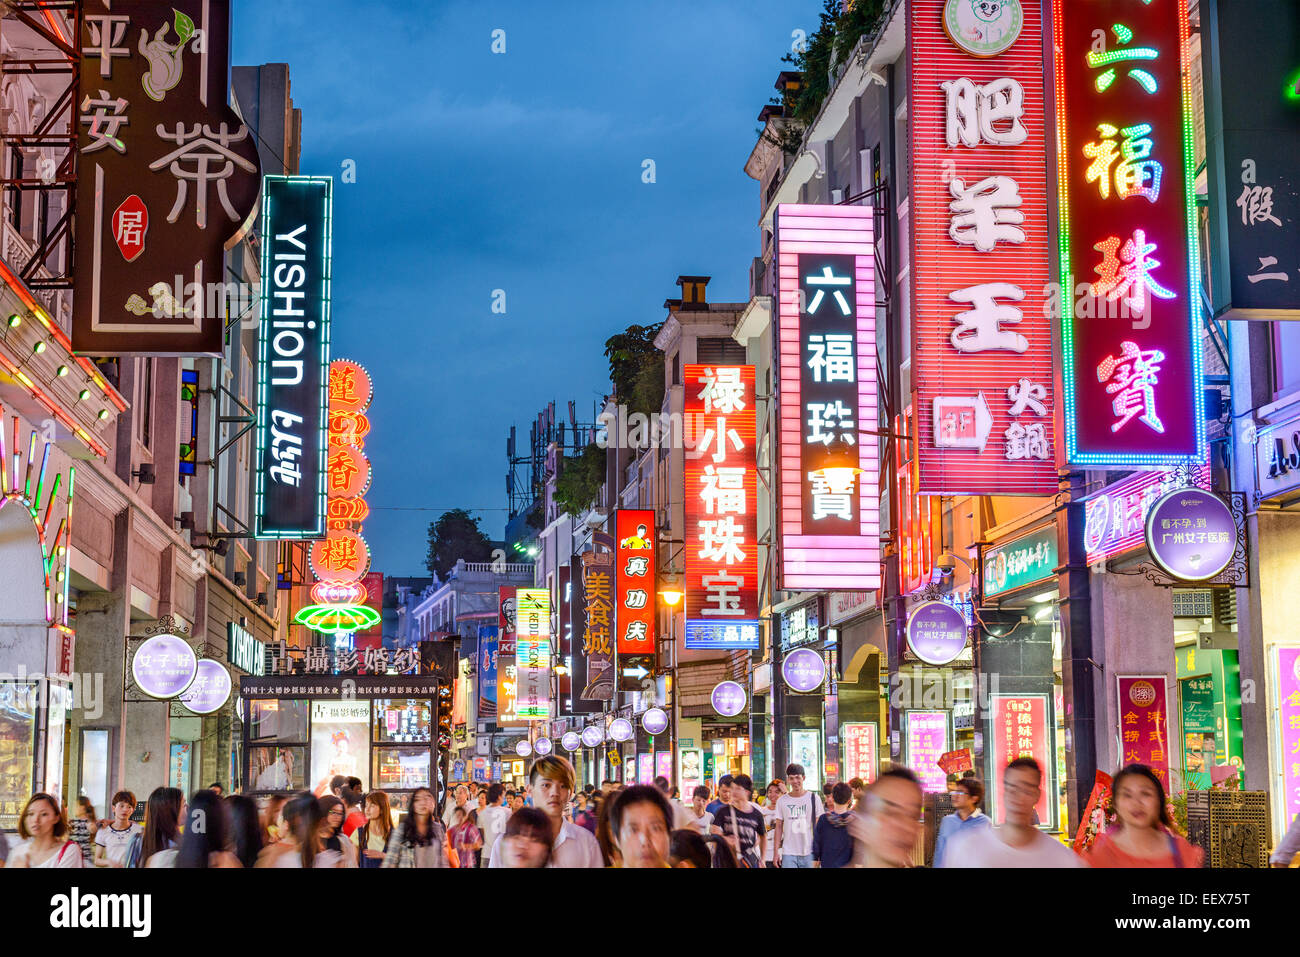 Pedestrians pass through Shangxiajiu Pedestrian Street. The street is the main shopping district of the city. - Stock Image